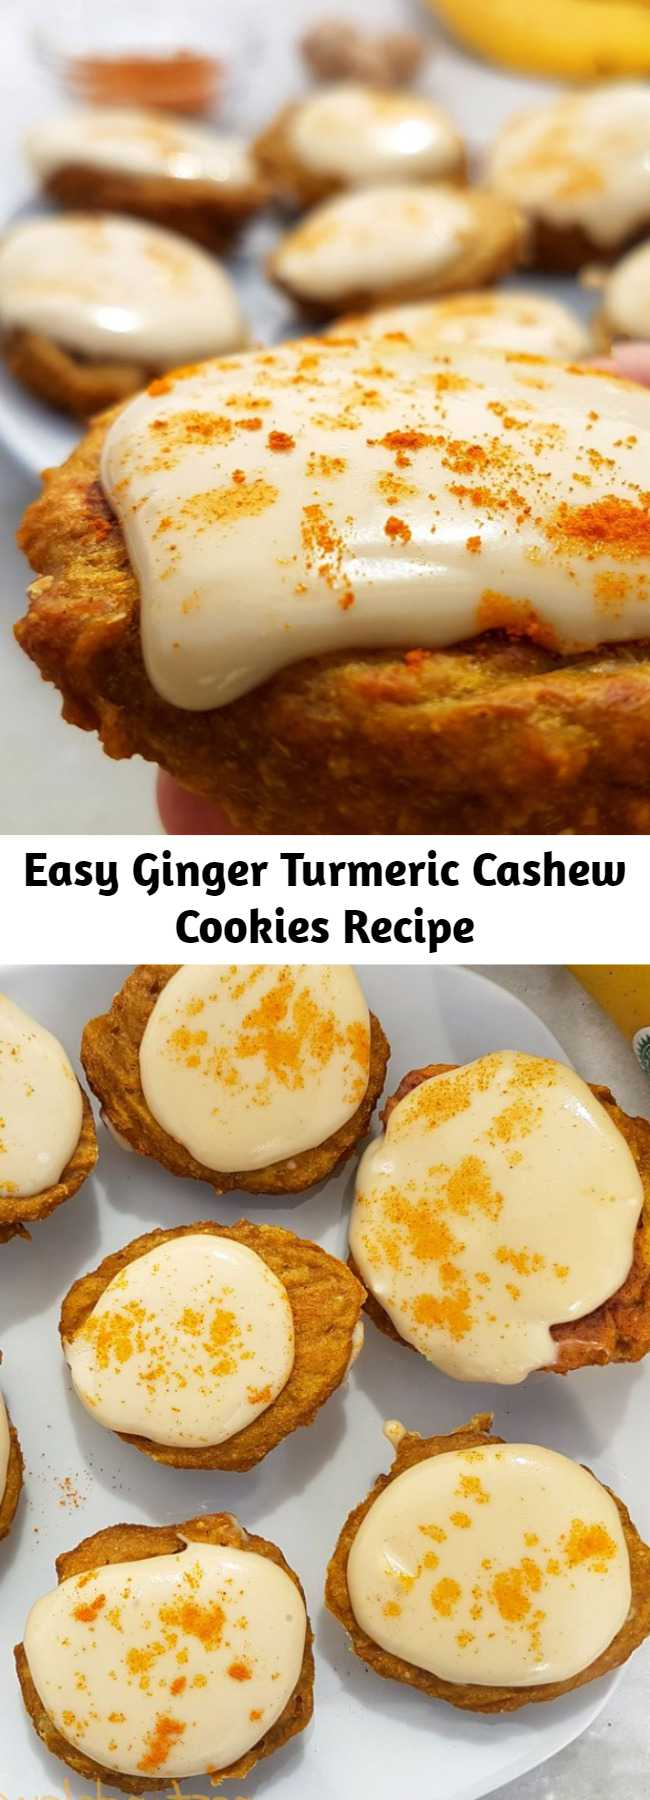 Easy Ginger Turmeric Cashew Cookies Recipe - Quick and easy healthy cookies recipe. These golden cookies are ginger and turmeric flavour with a creamy cashew frosting. Vegan and gluten free when made with gluten-free oats. #vegan #veganrecipe #healthy #cookies #healthycookies